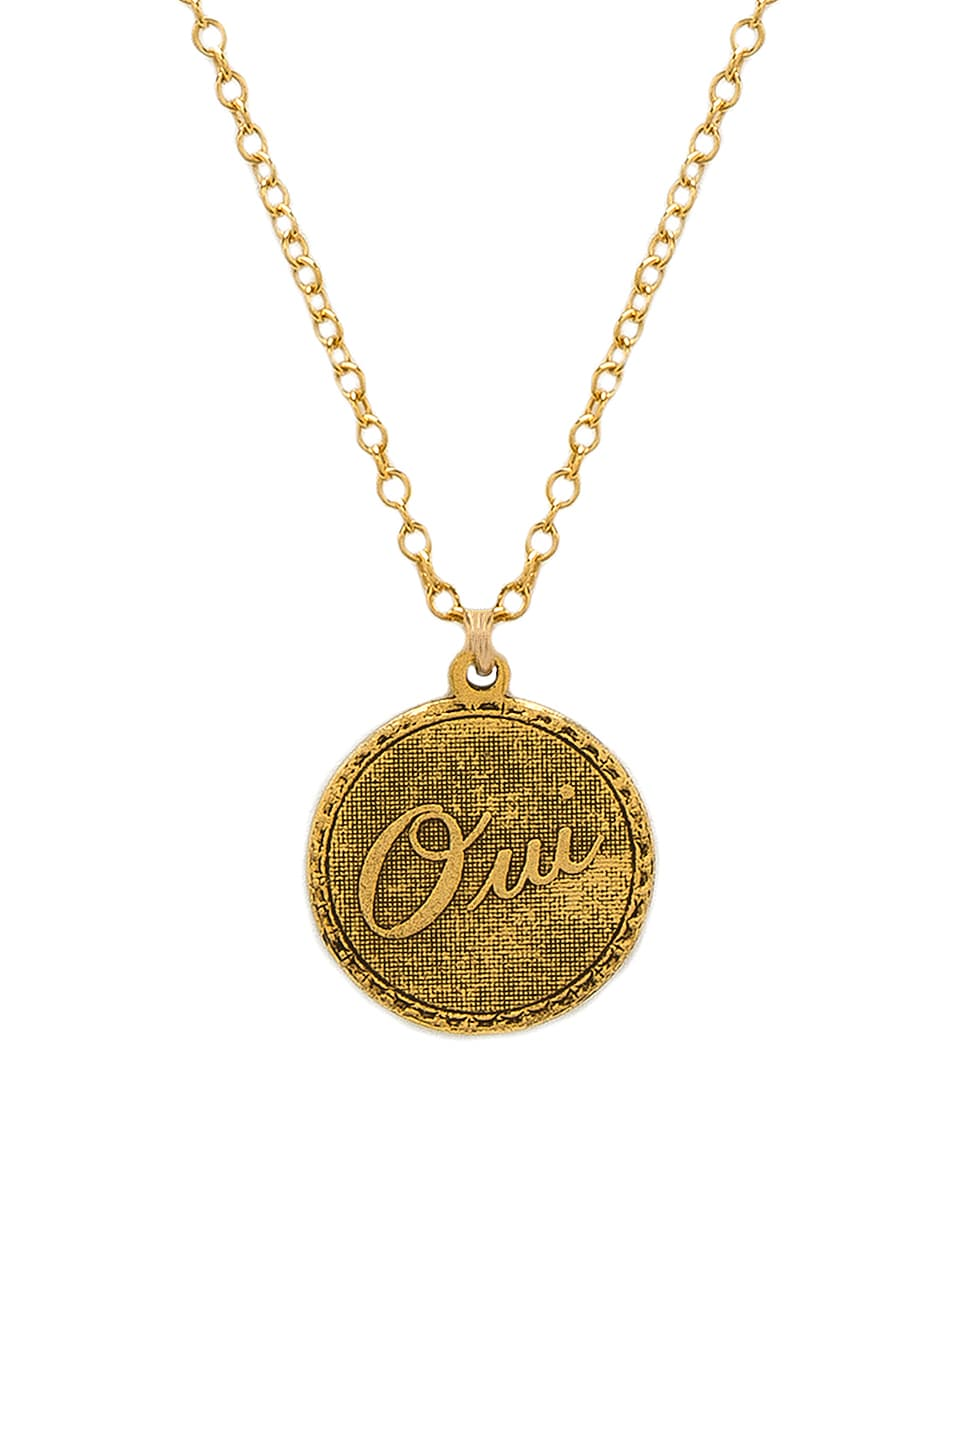 Amour Charm Necklace in Gold Natalie B Jewelry YfTMz5H